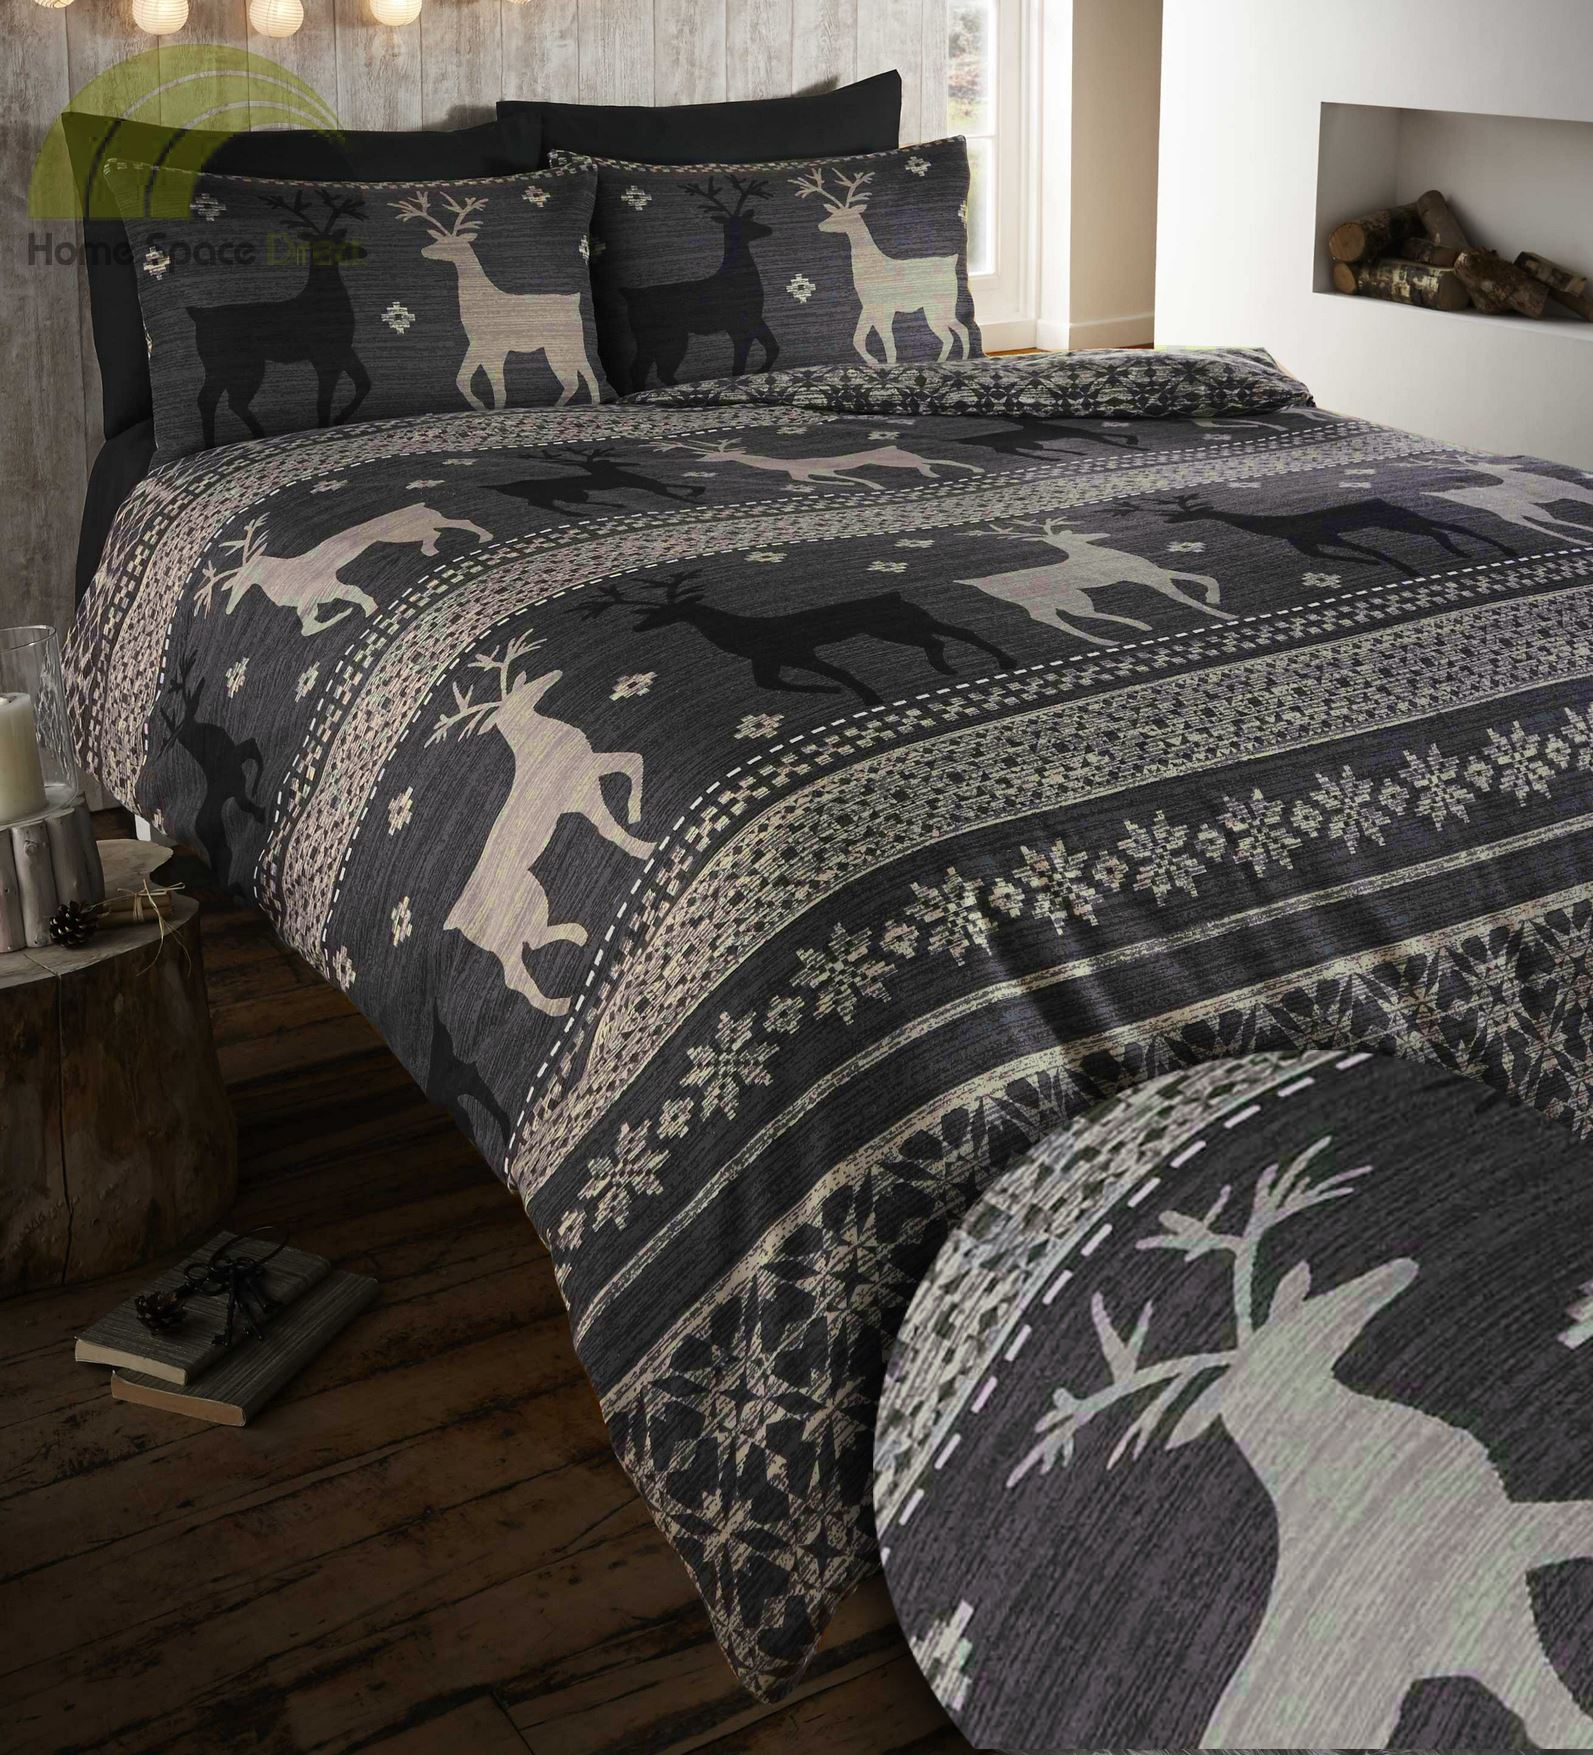 100 brushed cotton flannelette quilt duvet cover bedding. Black Bedroom Furniture Sets. Home Design Ideas